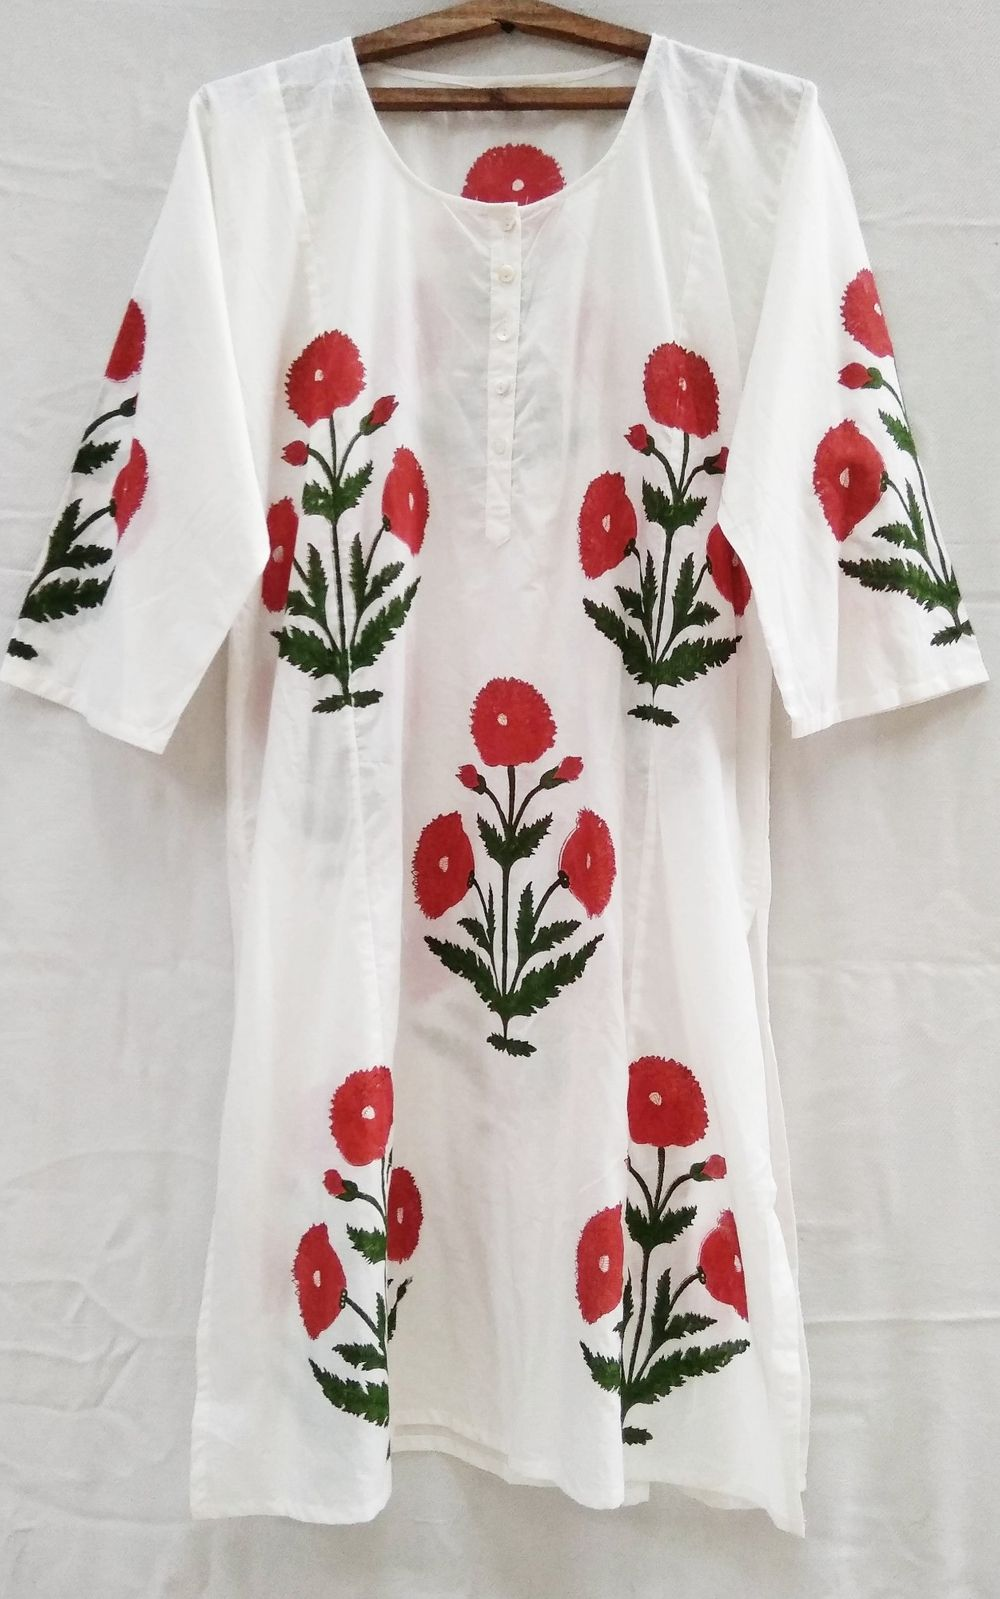 5a4d2c620aa Khadiwallah - Tomato Red Mughal style Poppy Floral Hand block print Indian  cotton Long Tunic Top